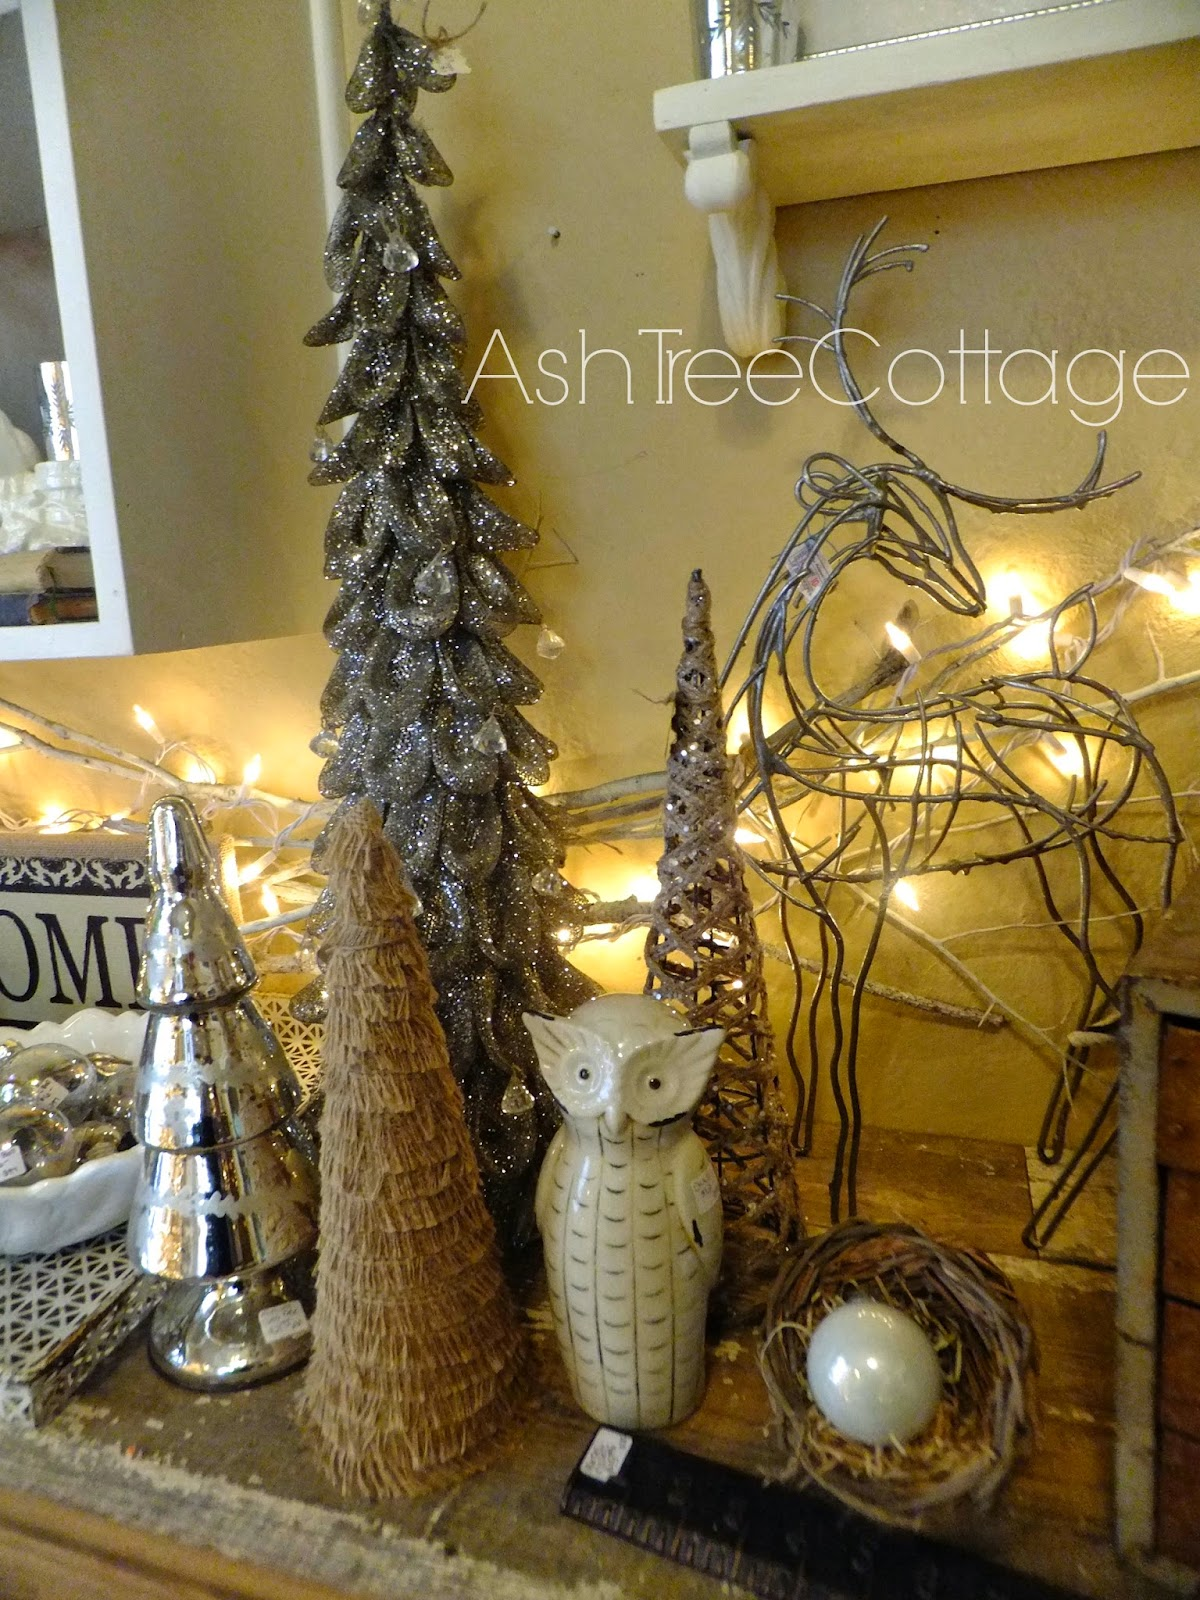 Country christmas decorations 2014 - I Thought I Would Share Some Texas Hill Country Decorating Ideas